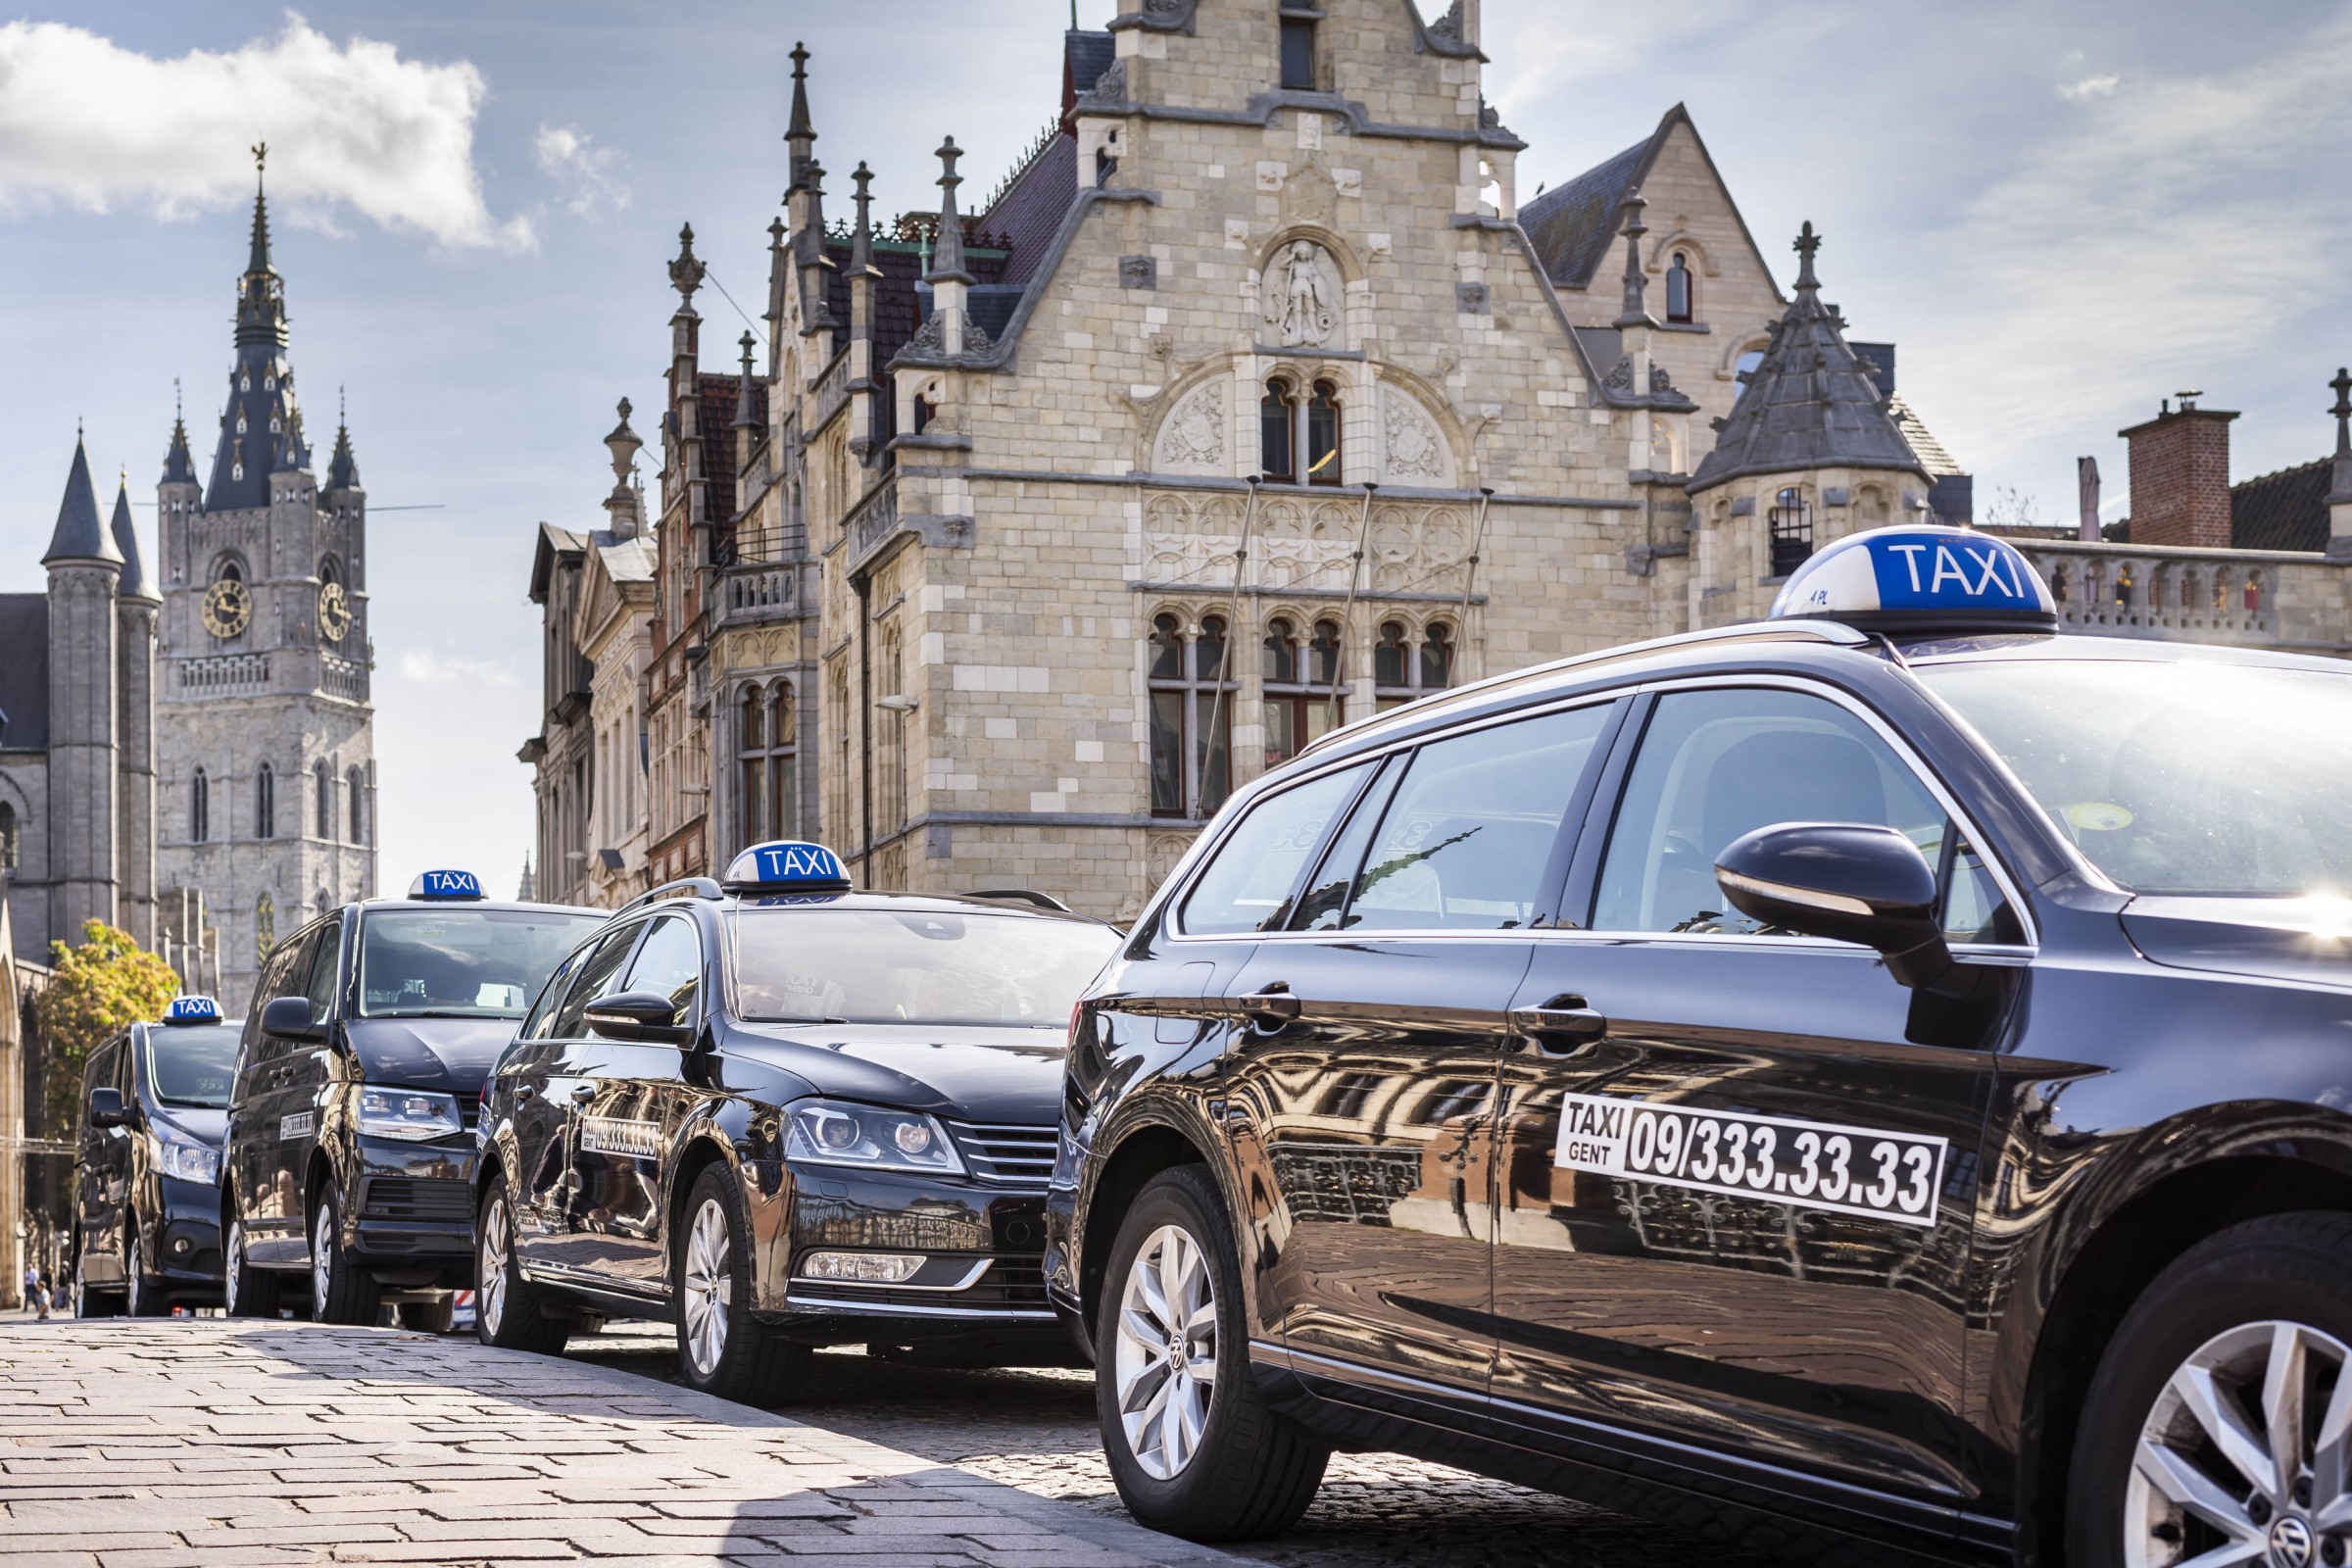 Taxi's-Gent-16.jpg